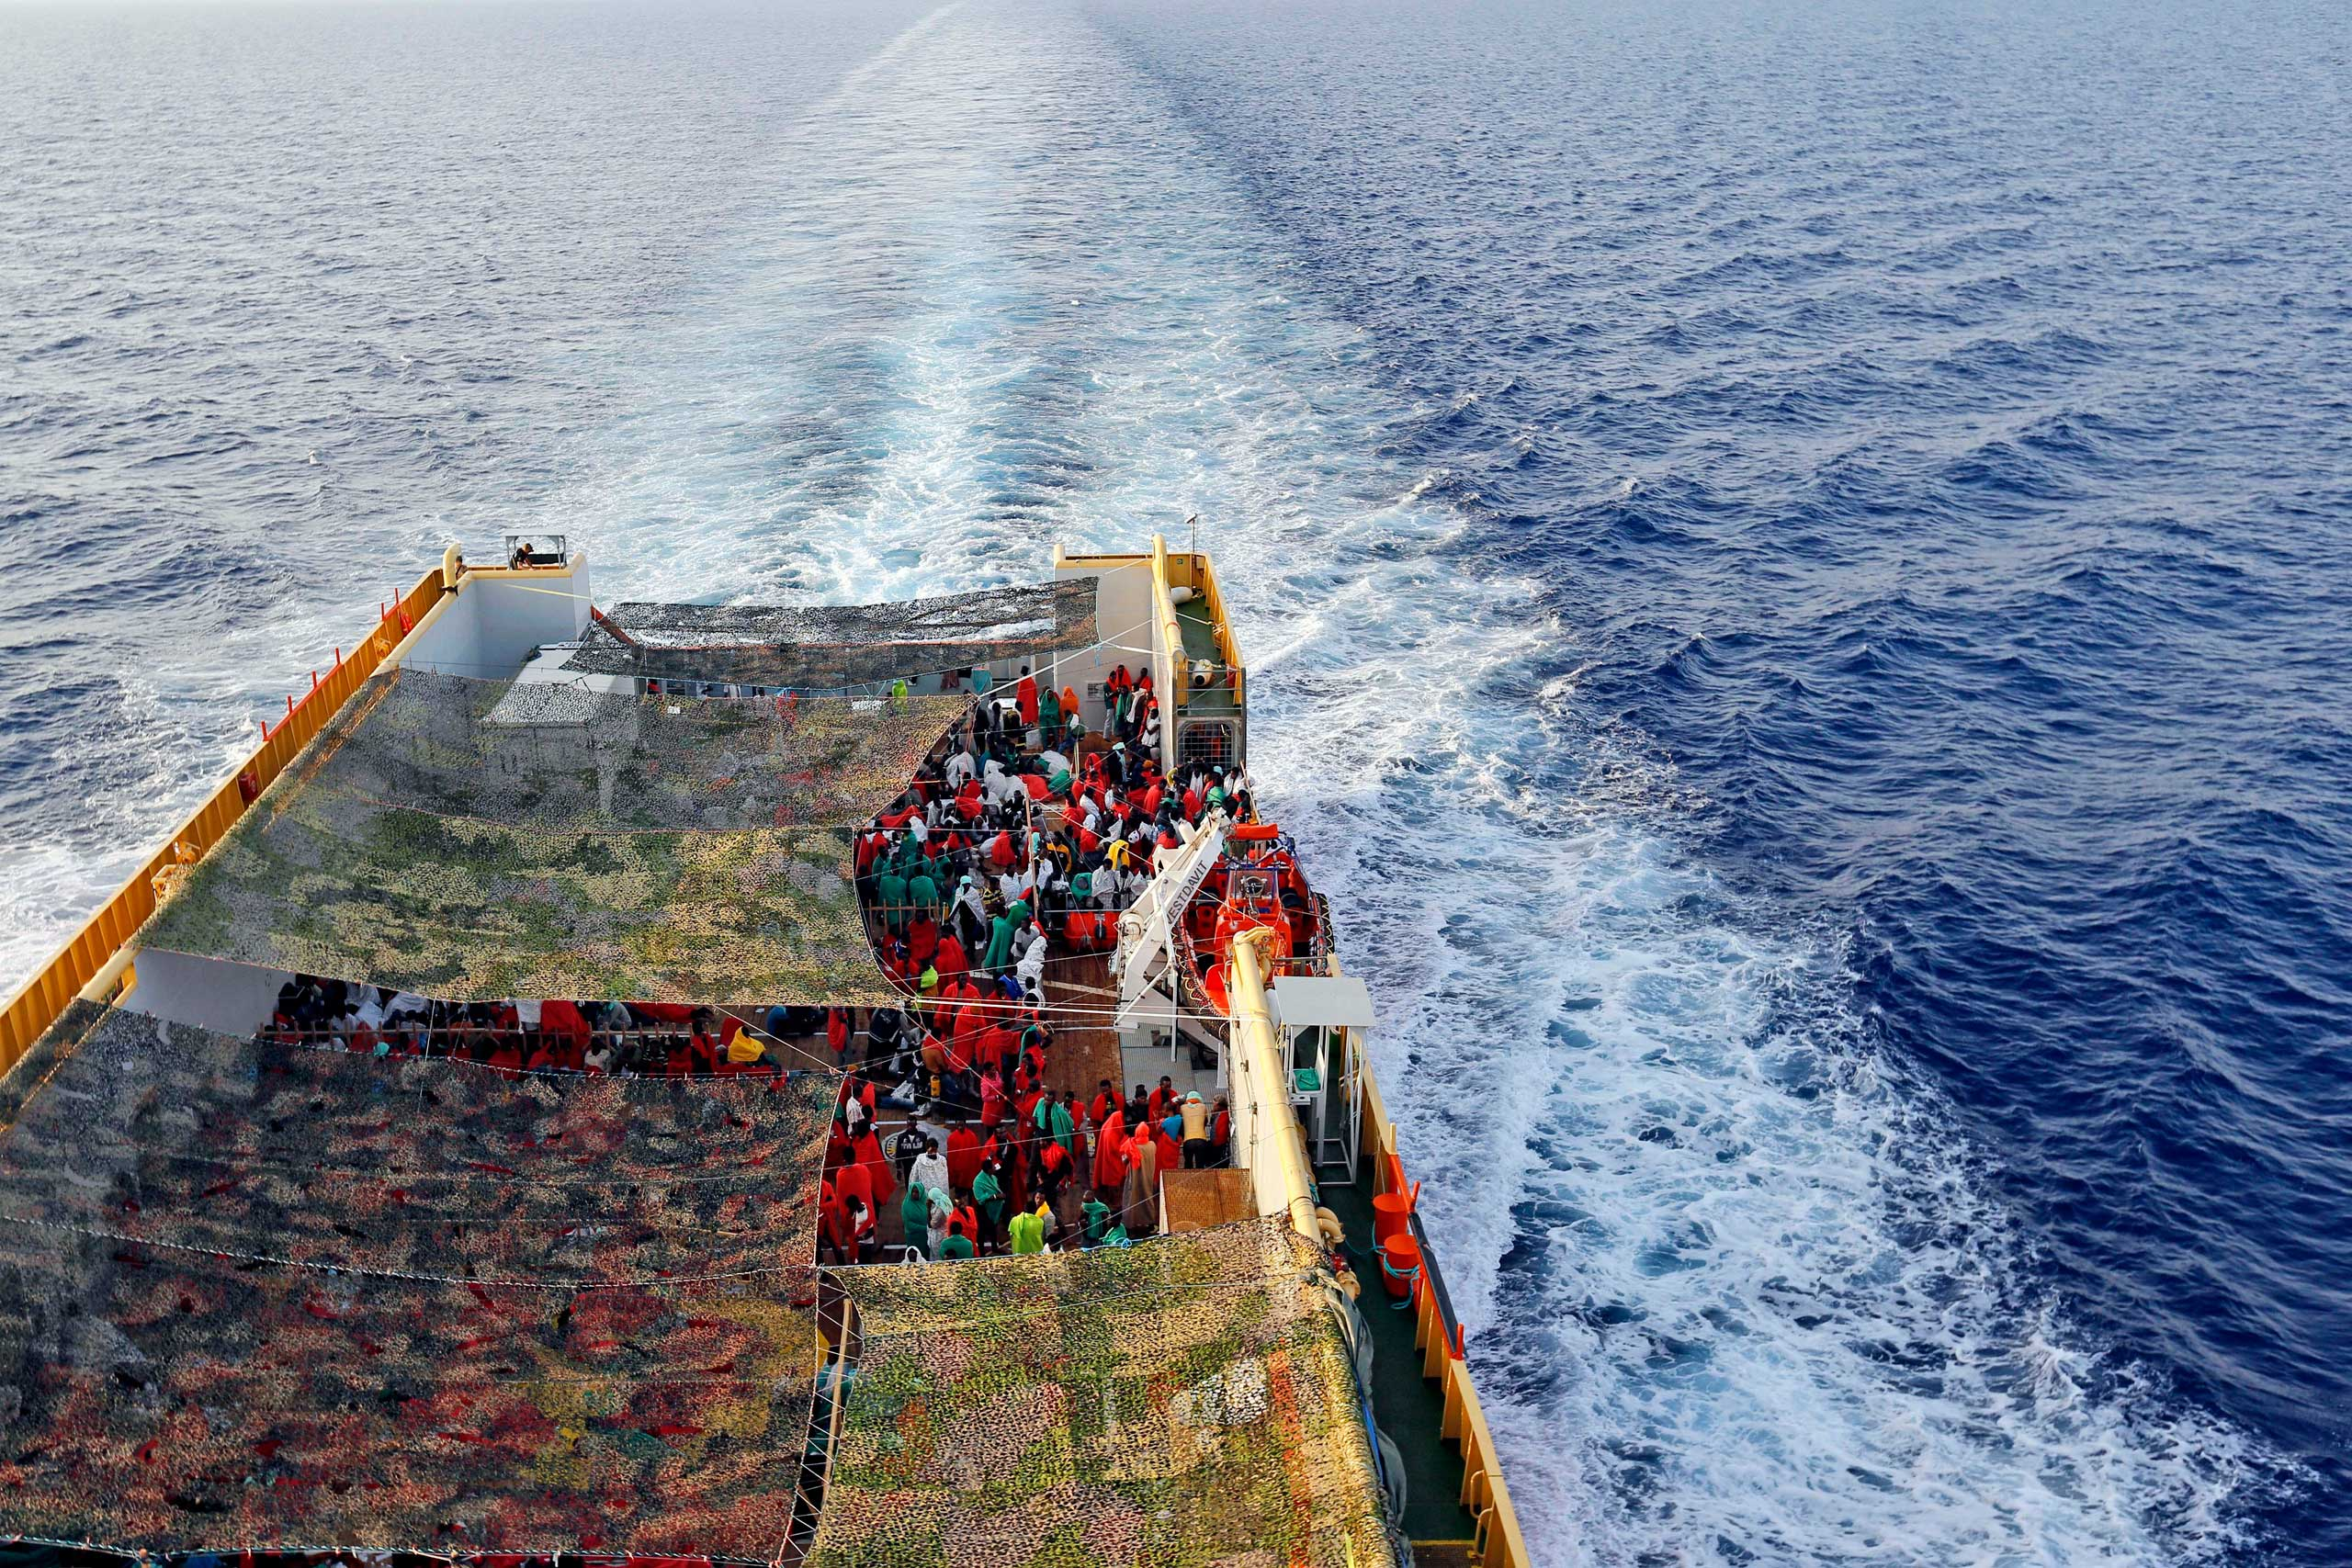 Migrants crowd the bridge of the Norwegian Siem Pilot ship sailing along the Mediterranean sea, on Sept. 2, 2015.